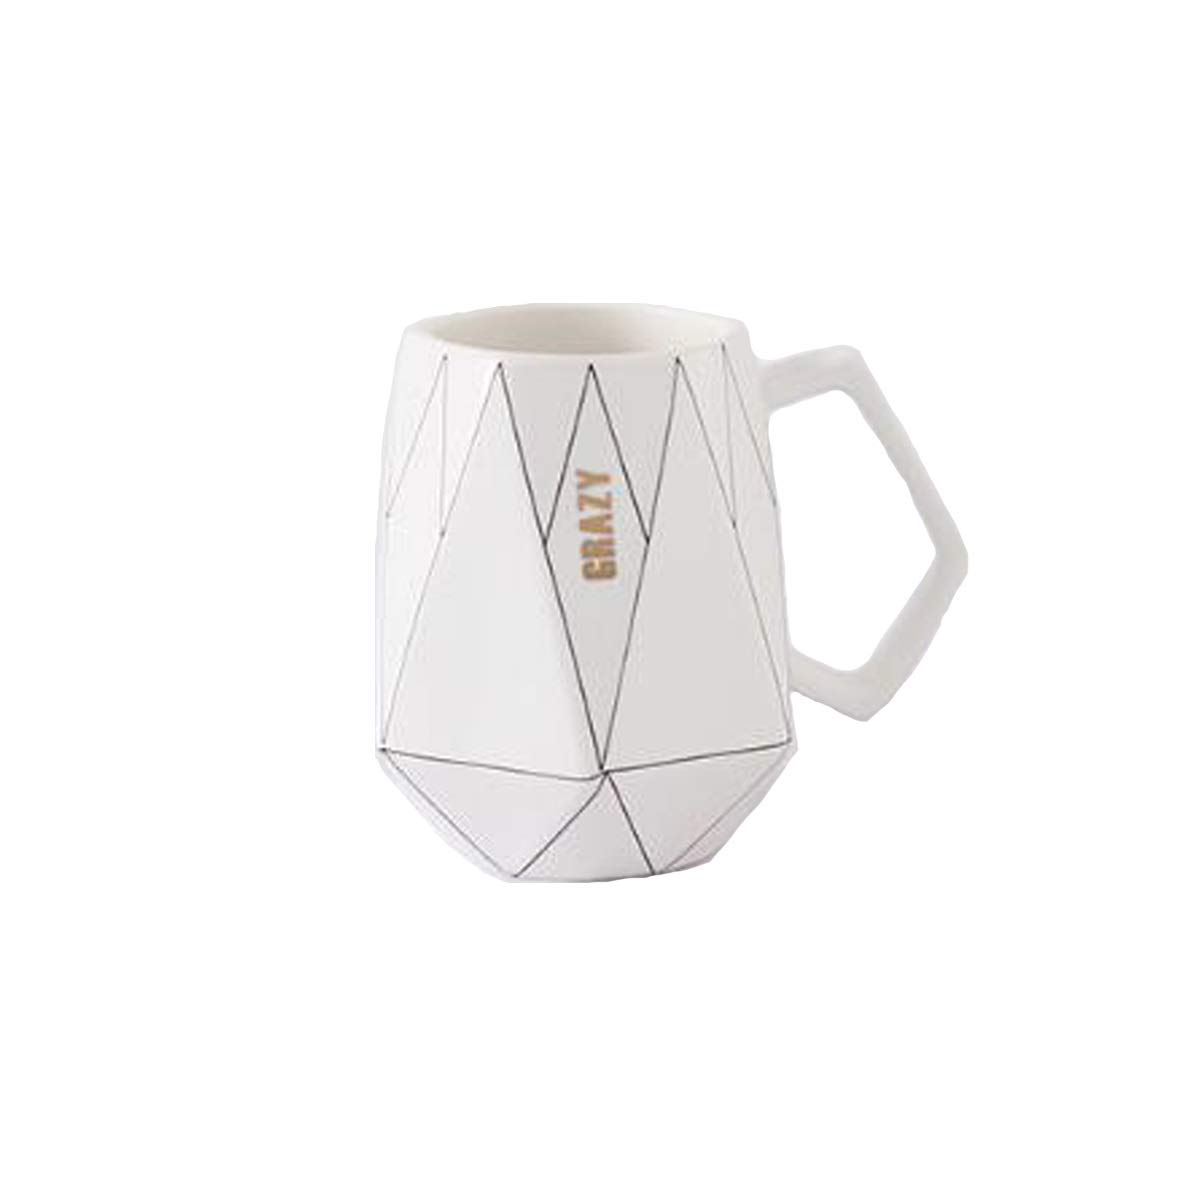 SHENGSHIHUIZHONG Polygonal Ceramic Mug, Office Coffee Milk Cup, Couple Cute Cup, Black, White 201-300ml Coffee Cup, (Color : White)